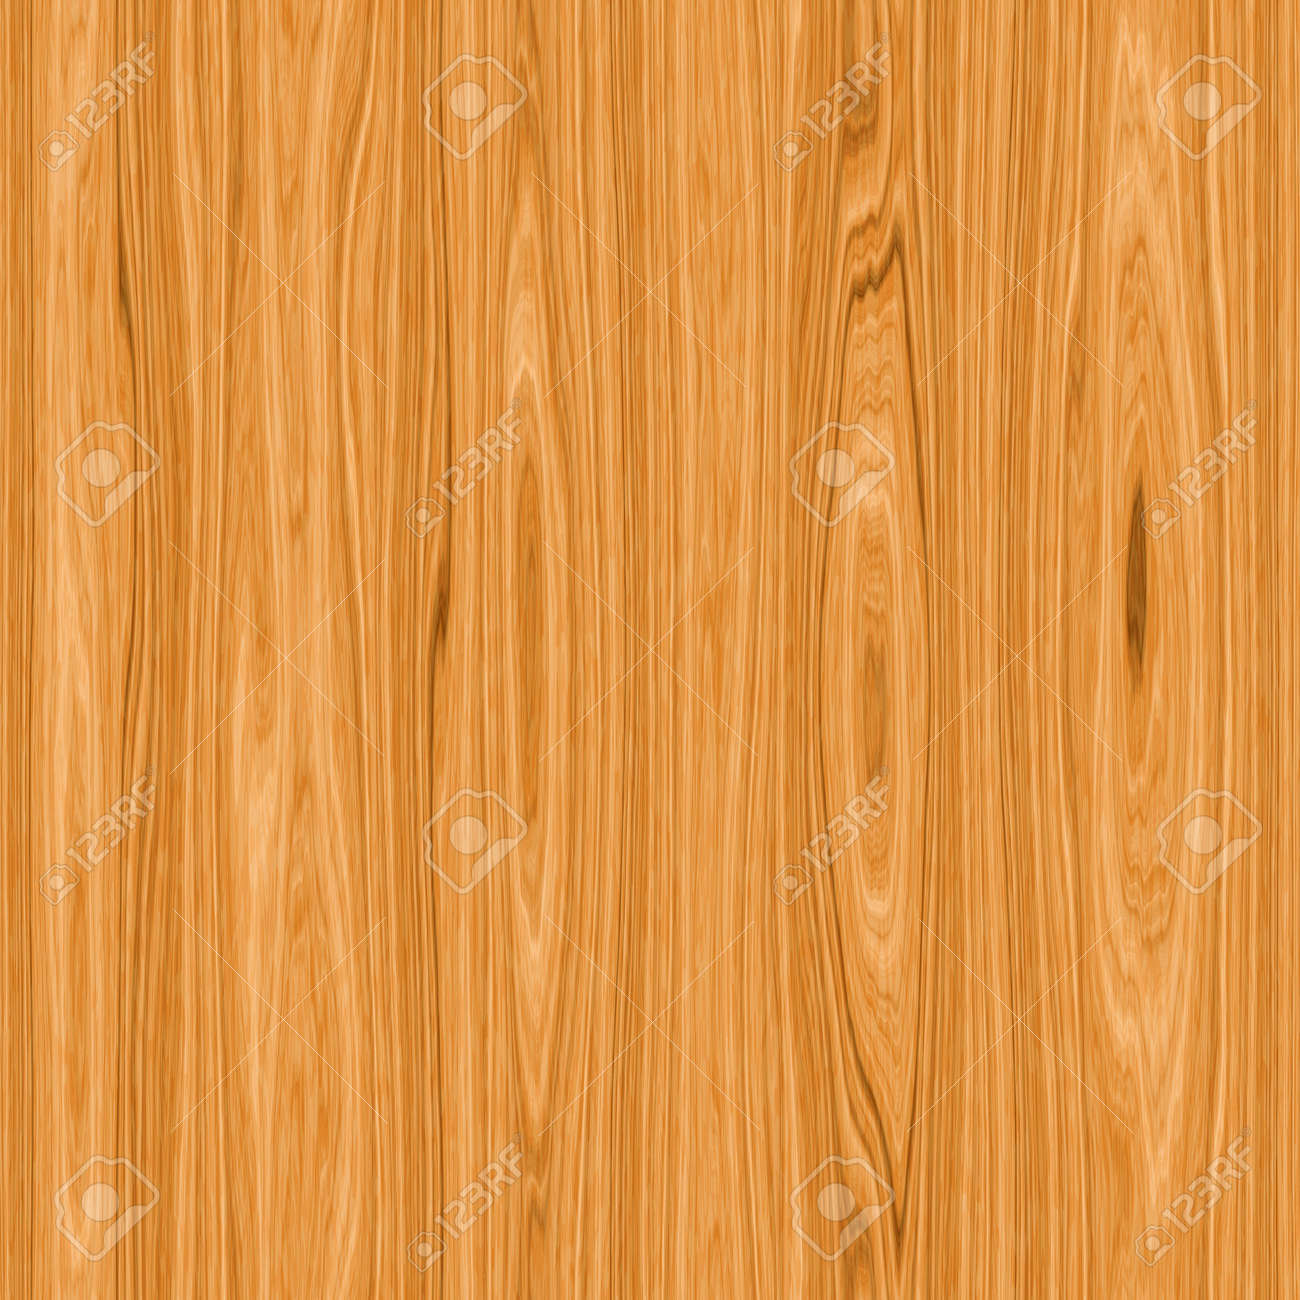 large seamless grainy wood texture background with knots Stock Photo - 2498204